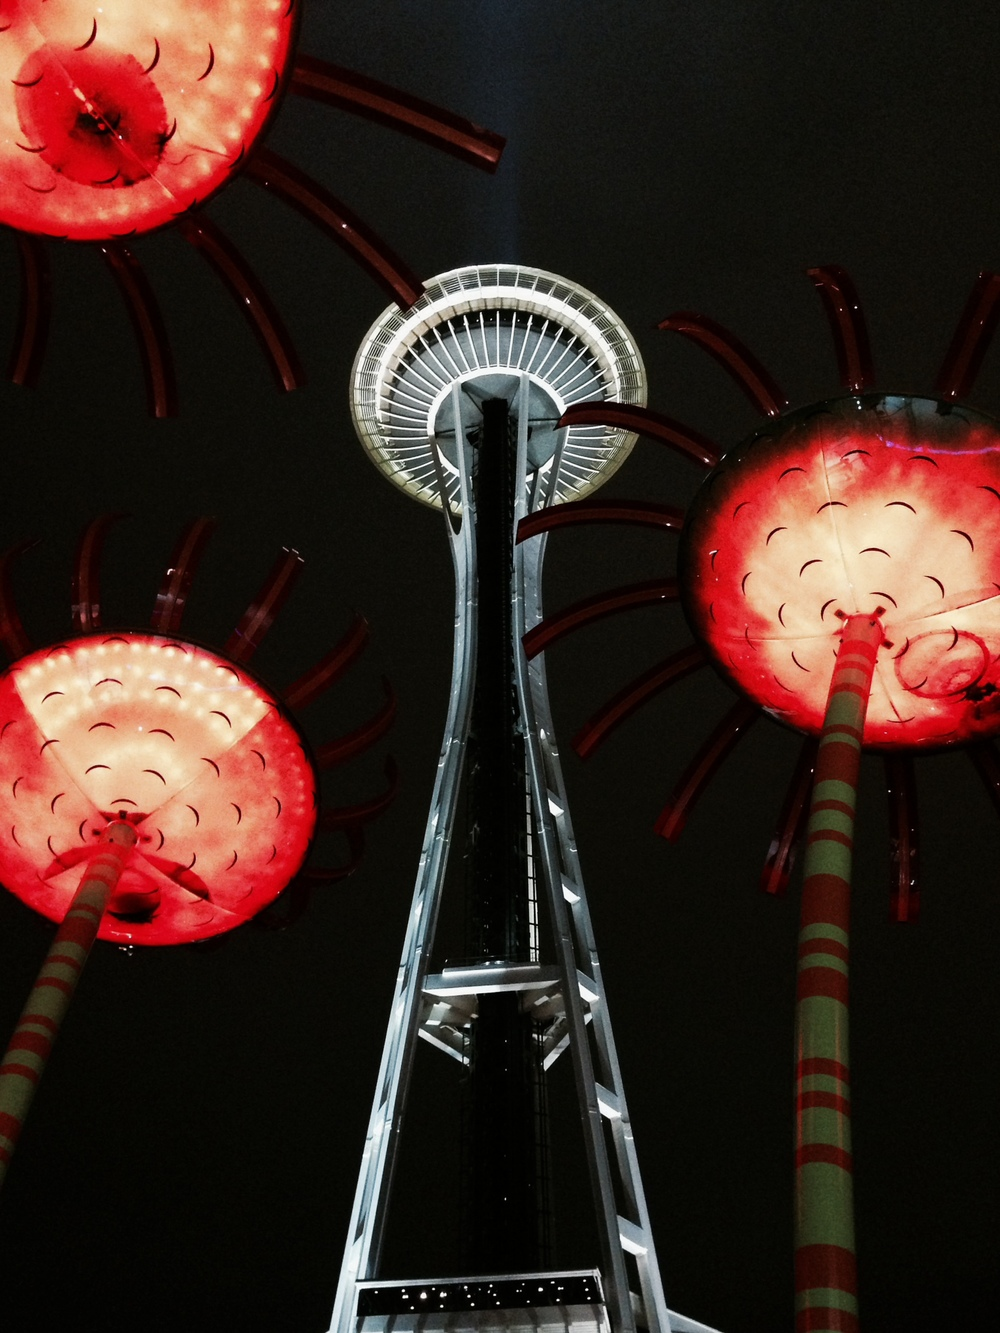 Notice that the Seattle Space Needle is in the center focus and that the left and right side of the image is balanced even though there are different elements on each side.